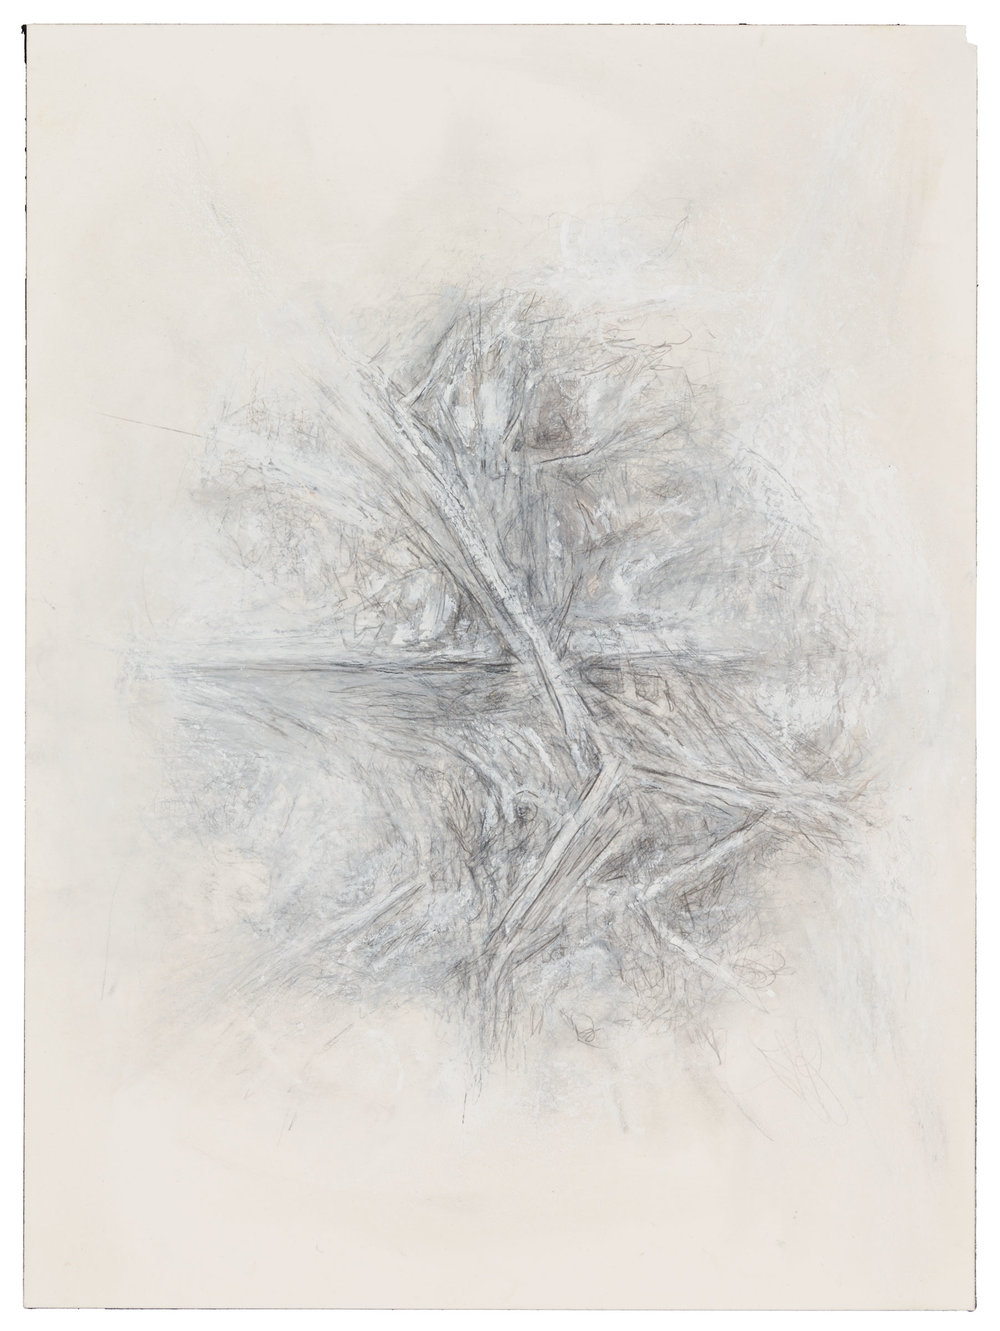 Hedda Sterne,Untitled (October 10, 2001), 2001,Mixed media on paper,12 1/4 in. x 9 1/8 in. (31.12 cm x 23.18 cm)